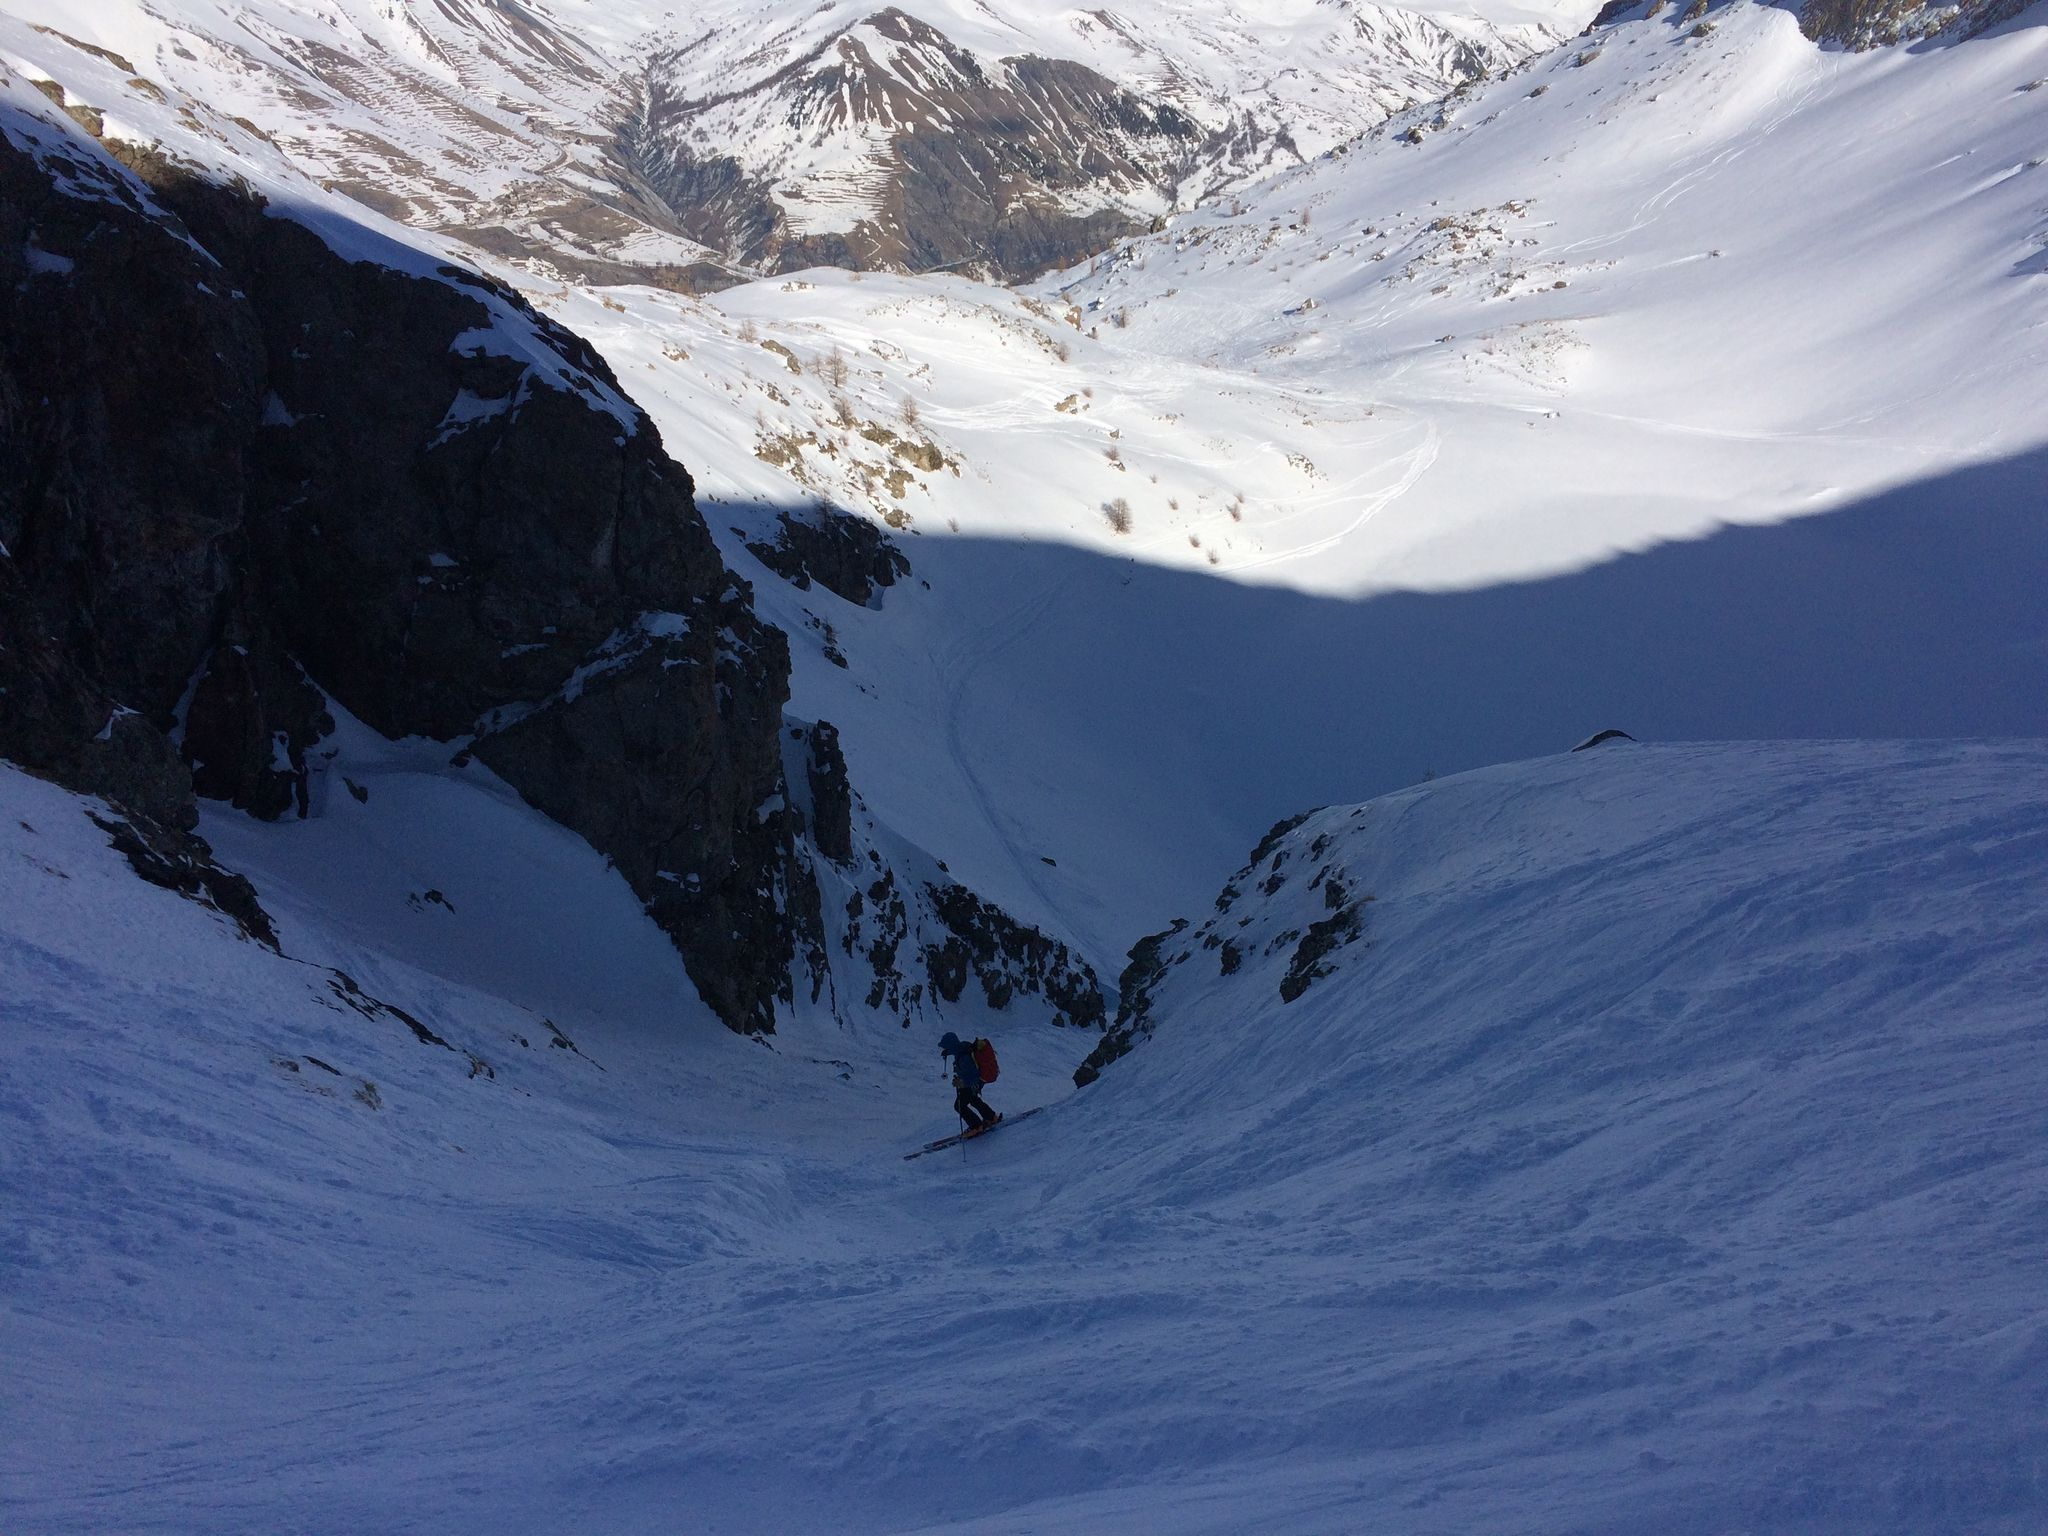 Me skiing the hidden couloir down to the lake at La Grave. Photo credit: Marvin Klein